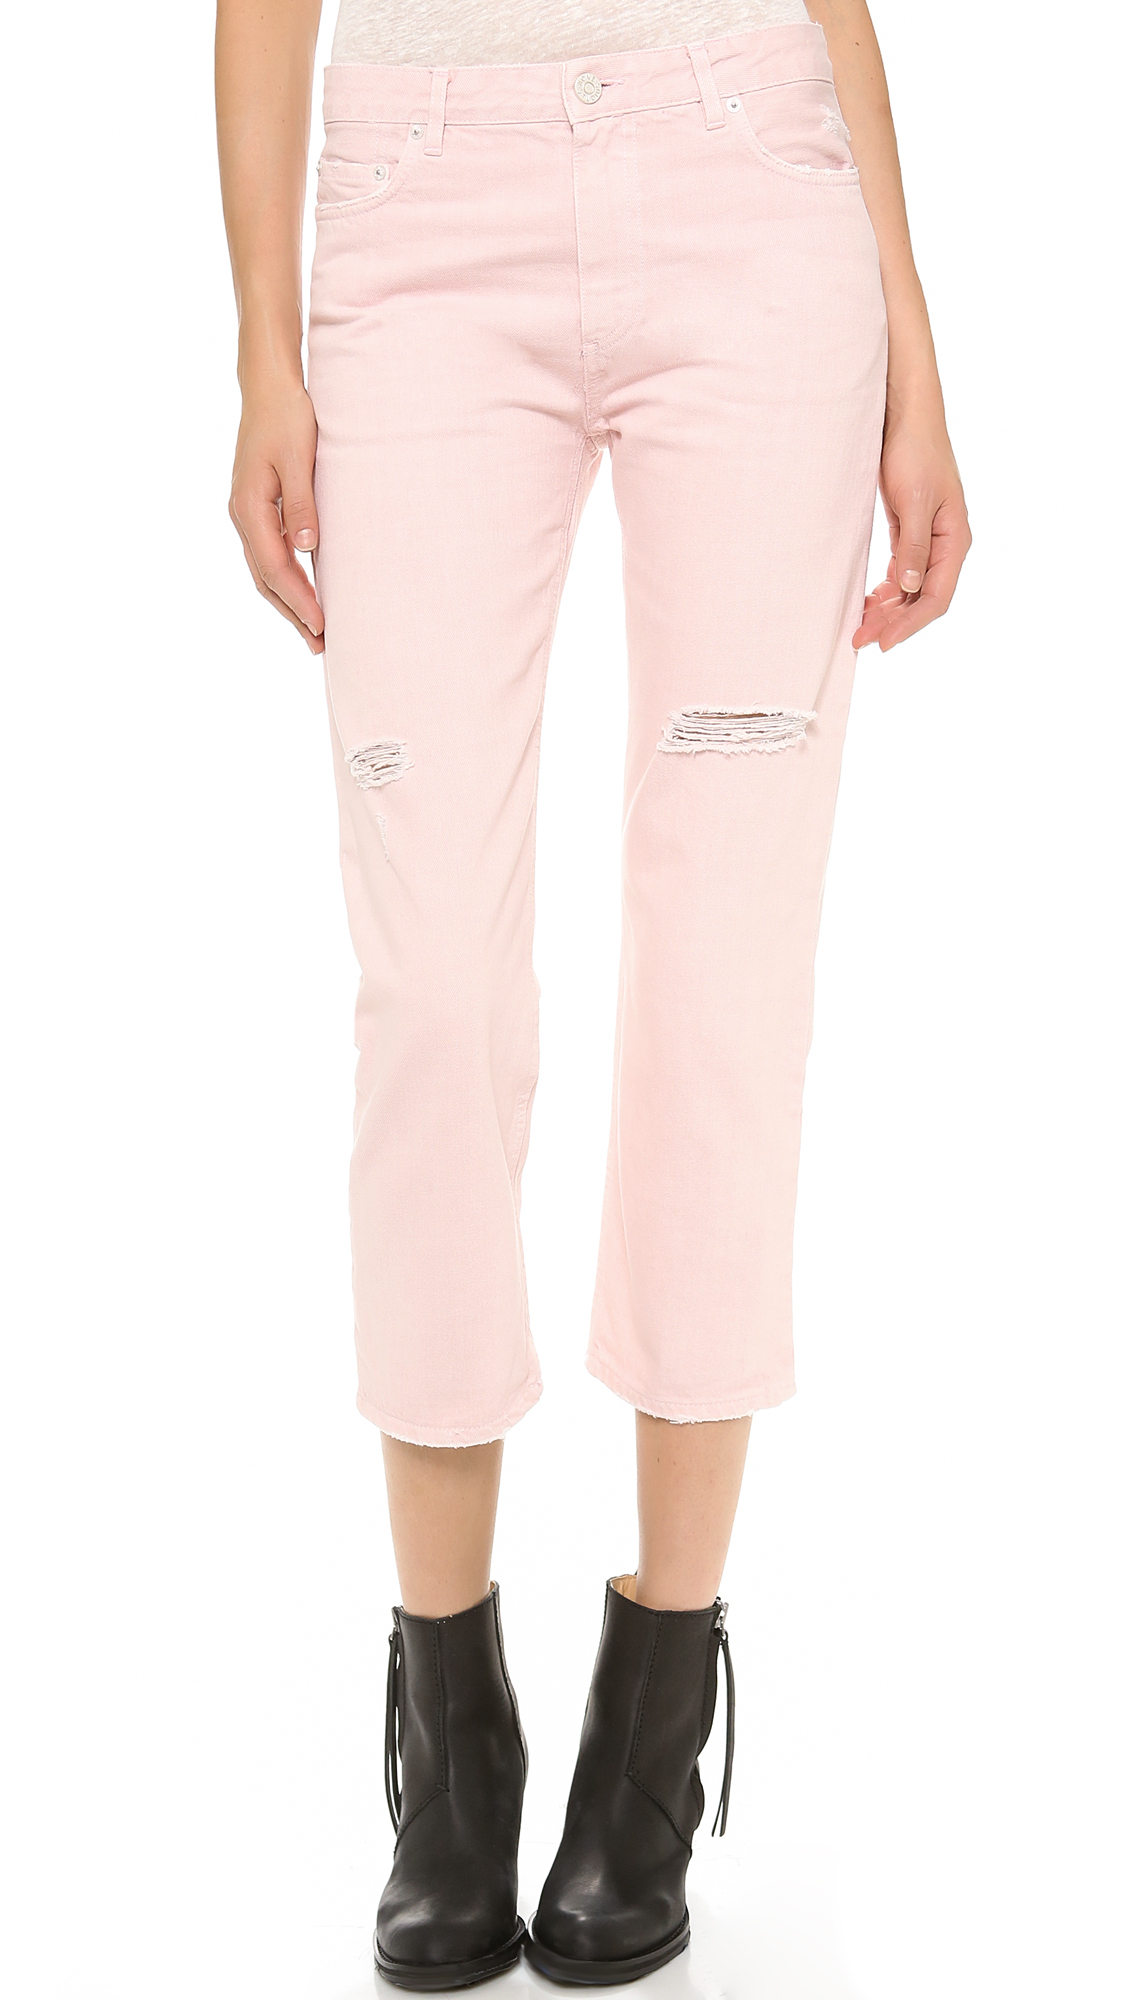 Acne studios Pop Distressed Jeans in Pink | Lyst